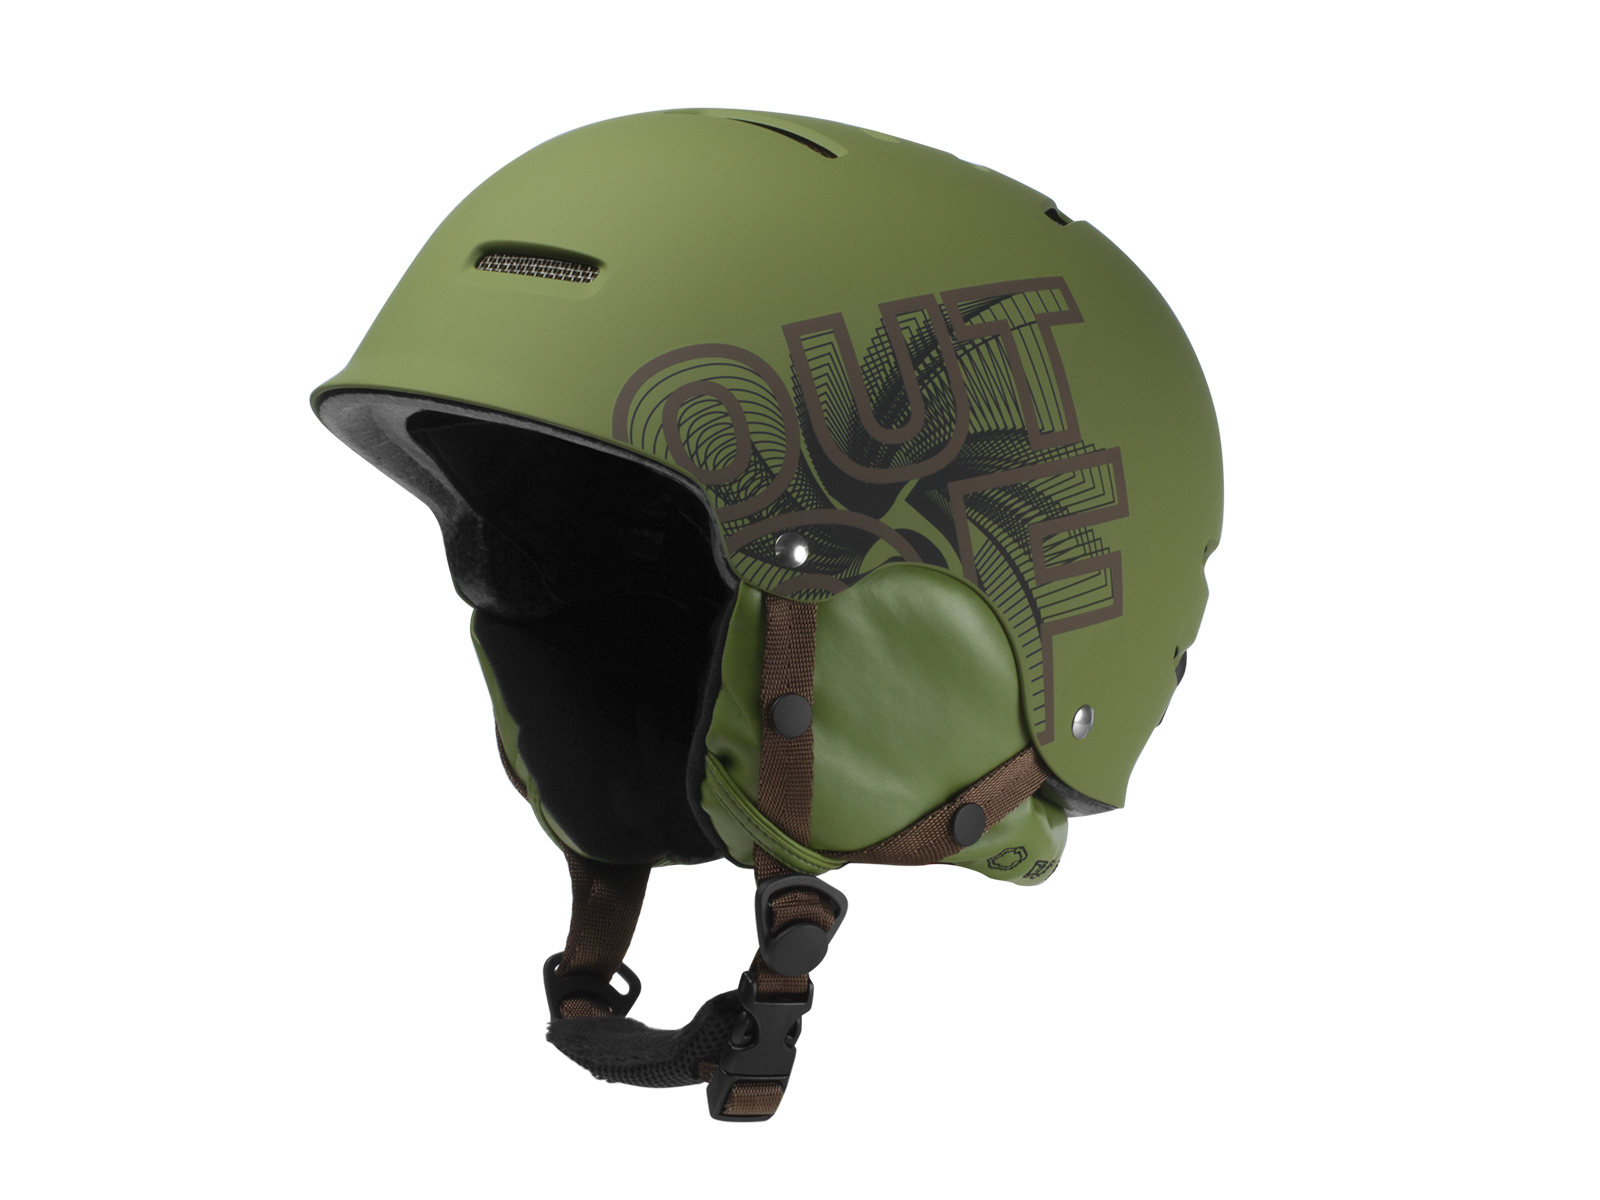 WIPEOUT MILITARY HELMET